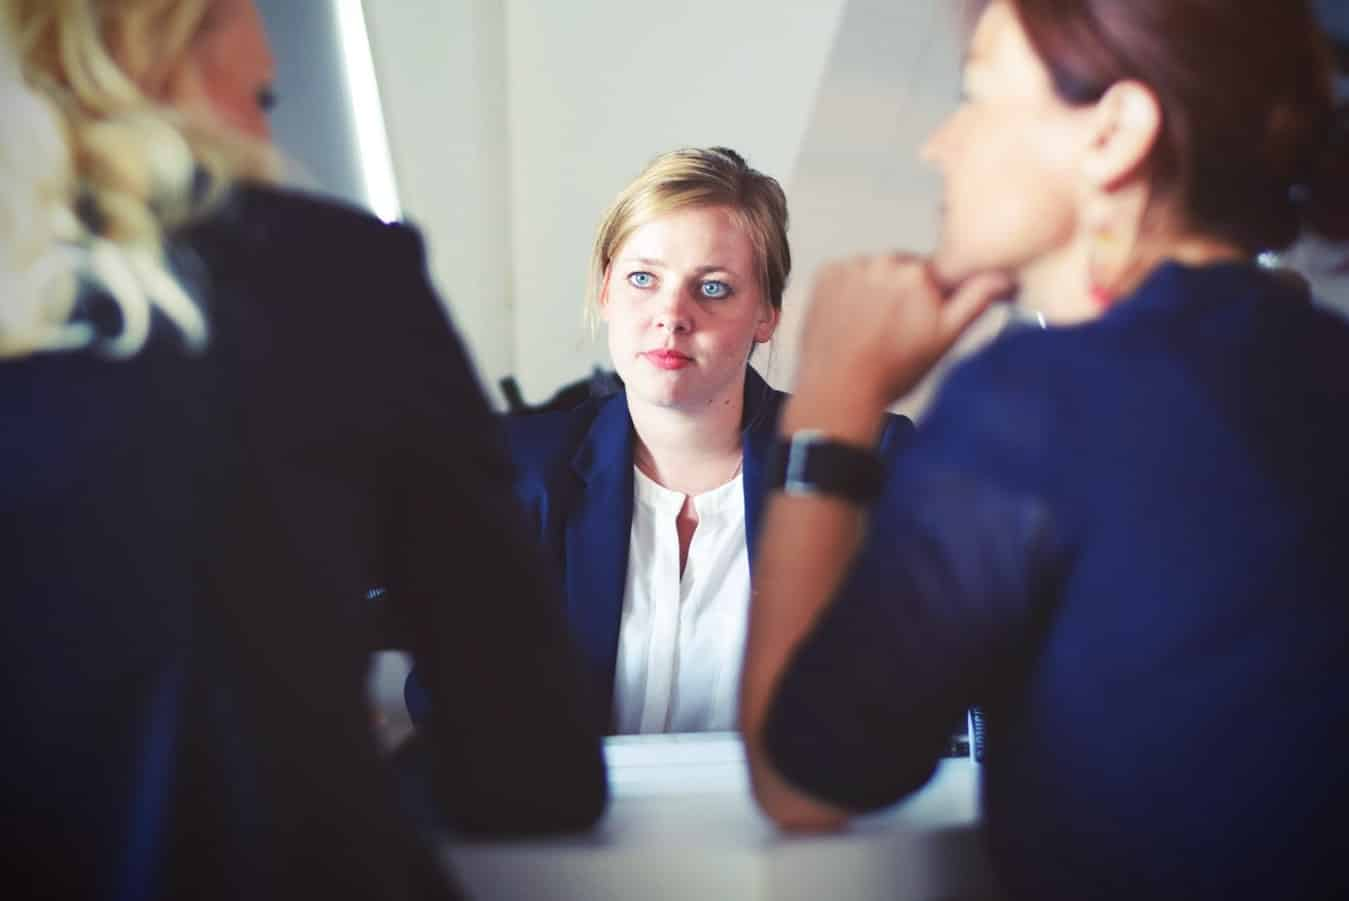 Frequently Asked Questions at Job Interviews